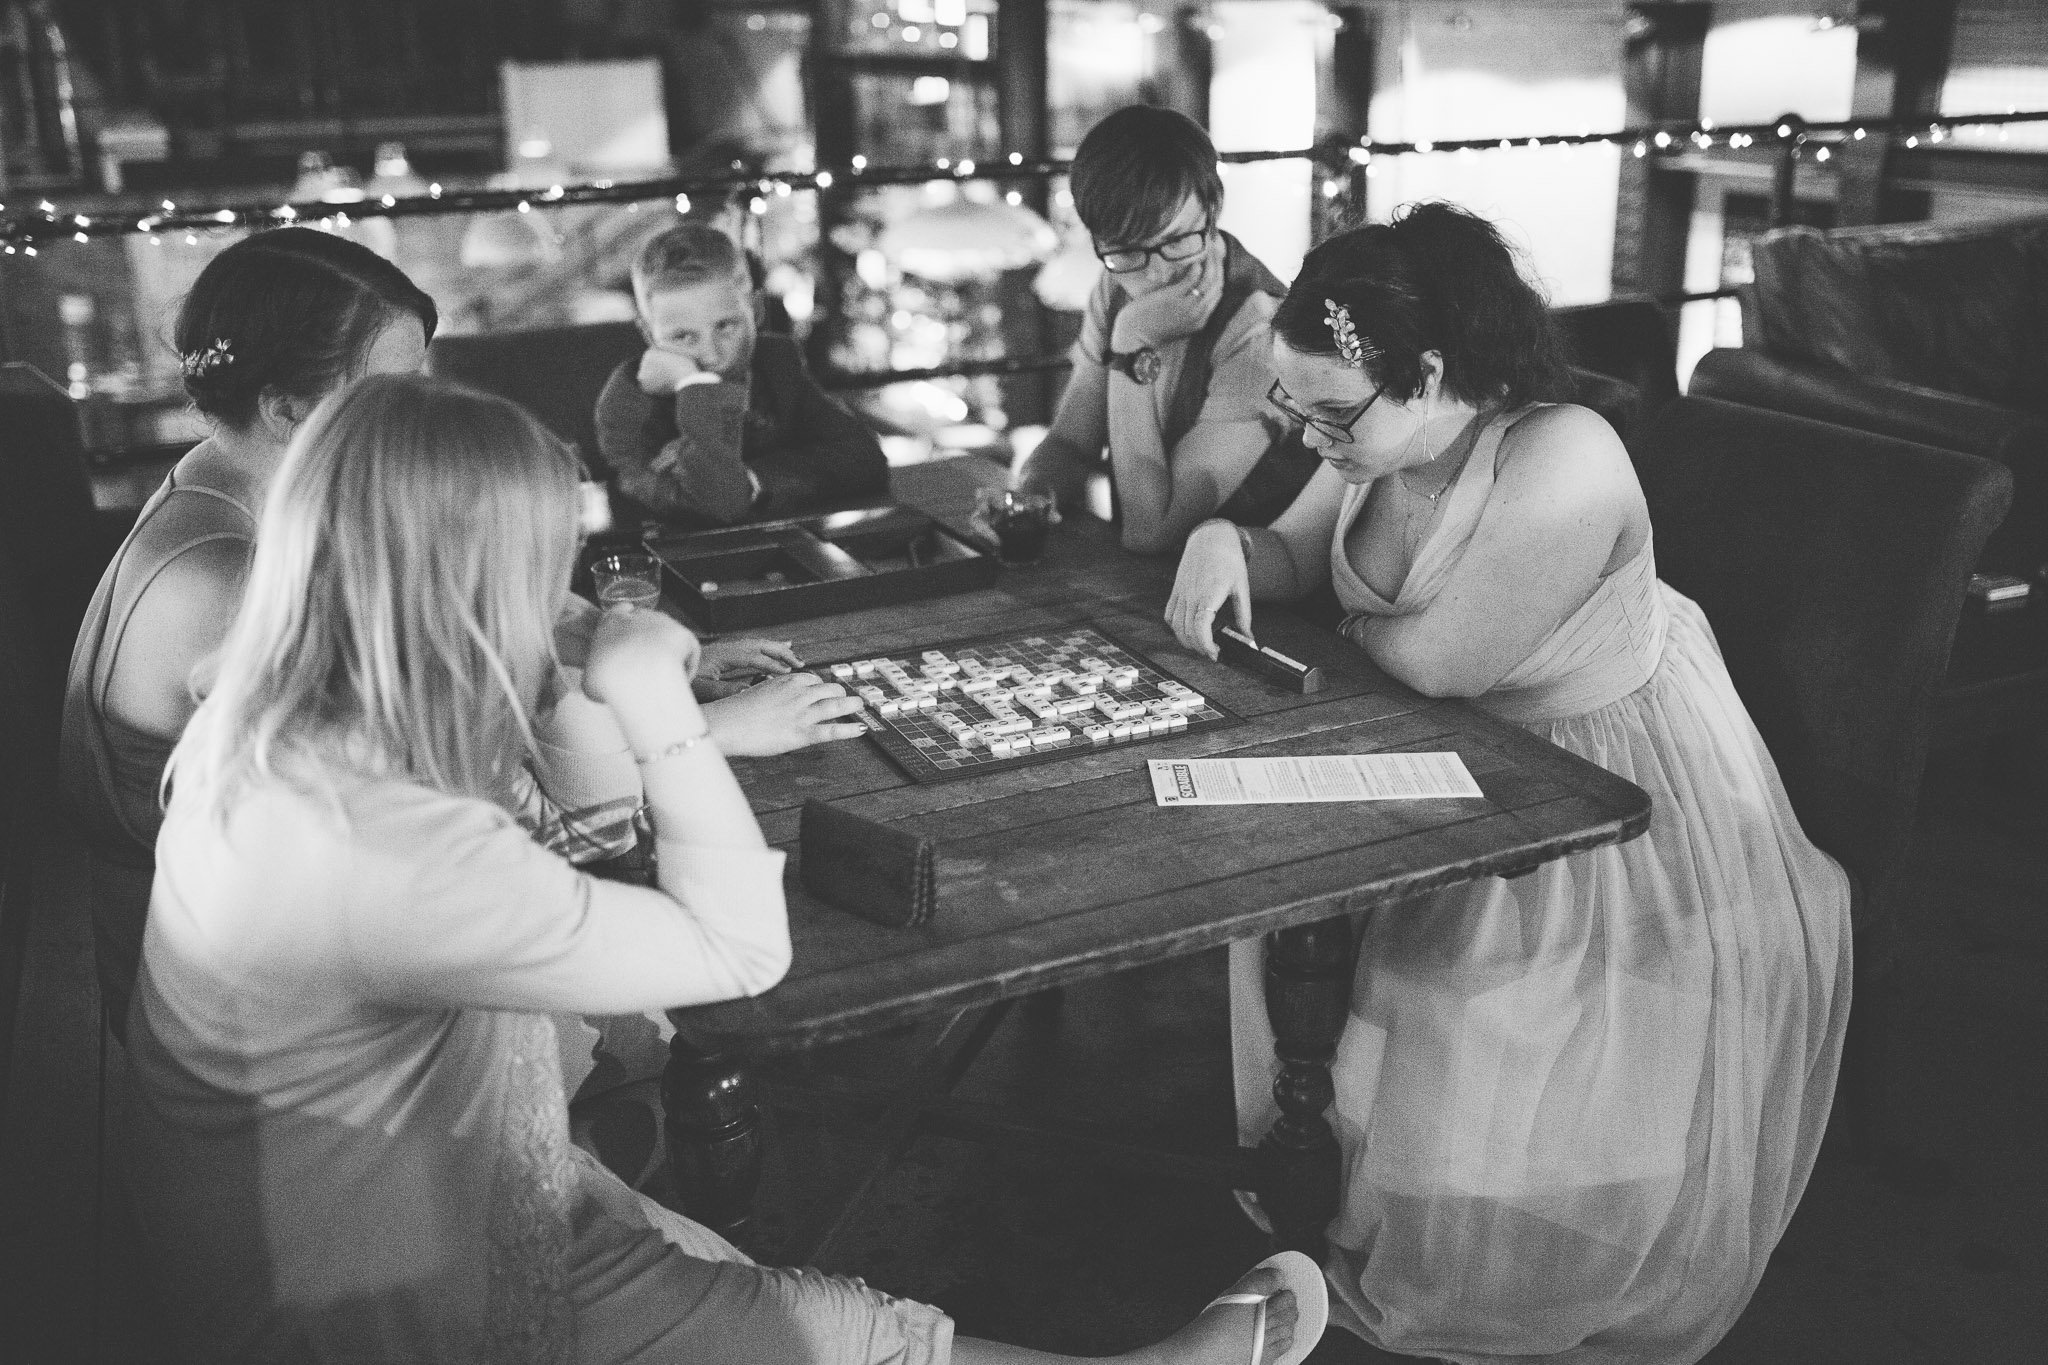 Guests playing games at The Depot Carpenter's mews